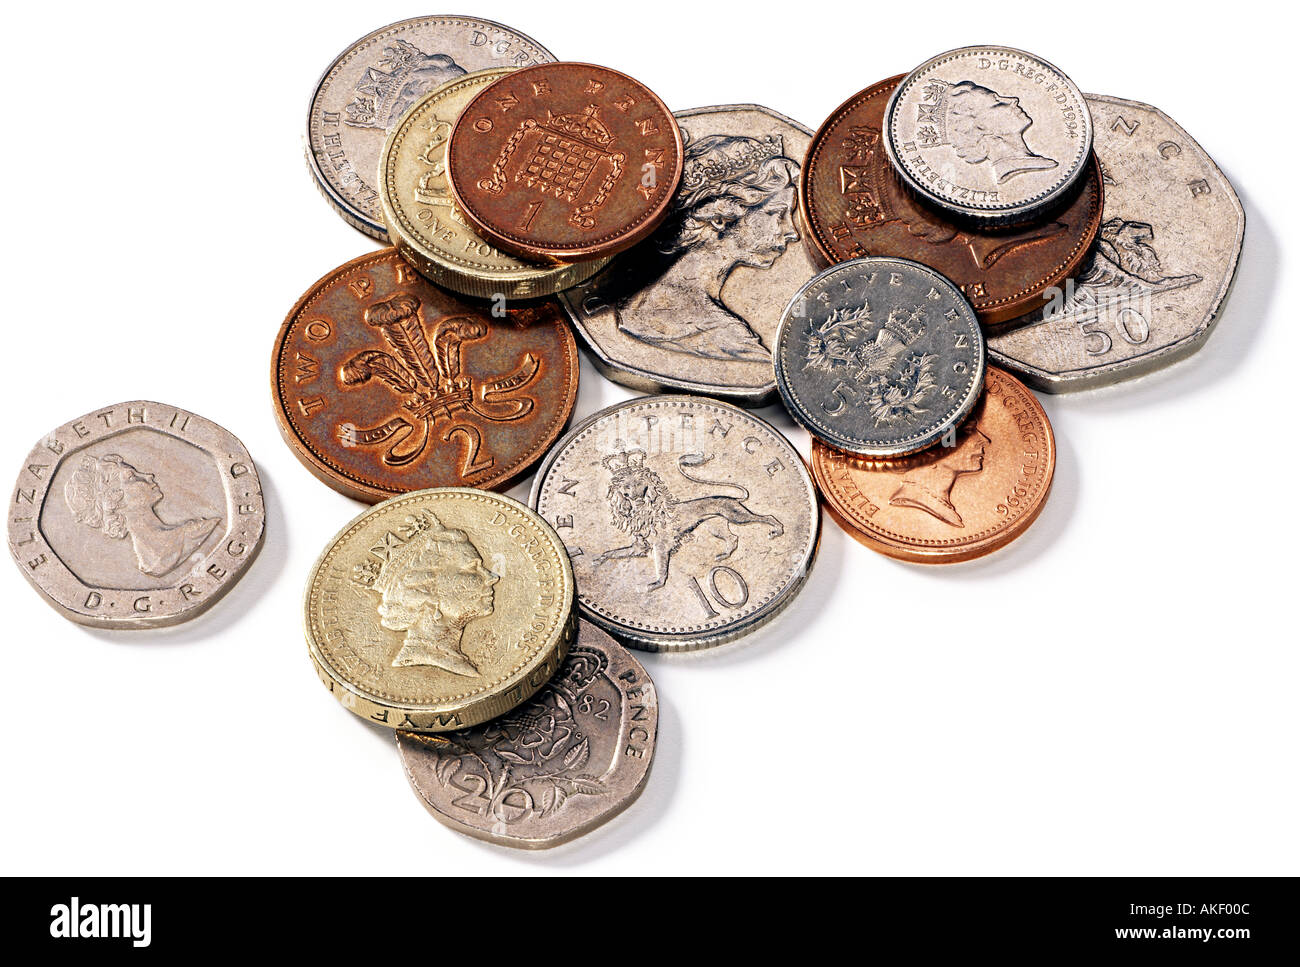 coins coin british pound and pence currency of great britain ...